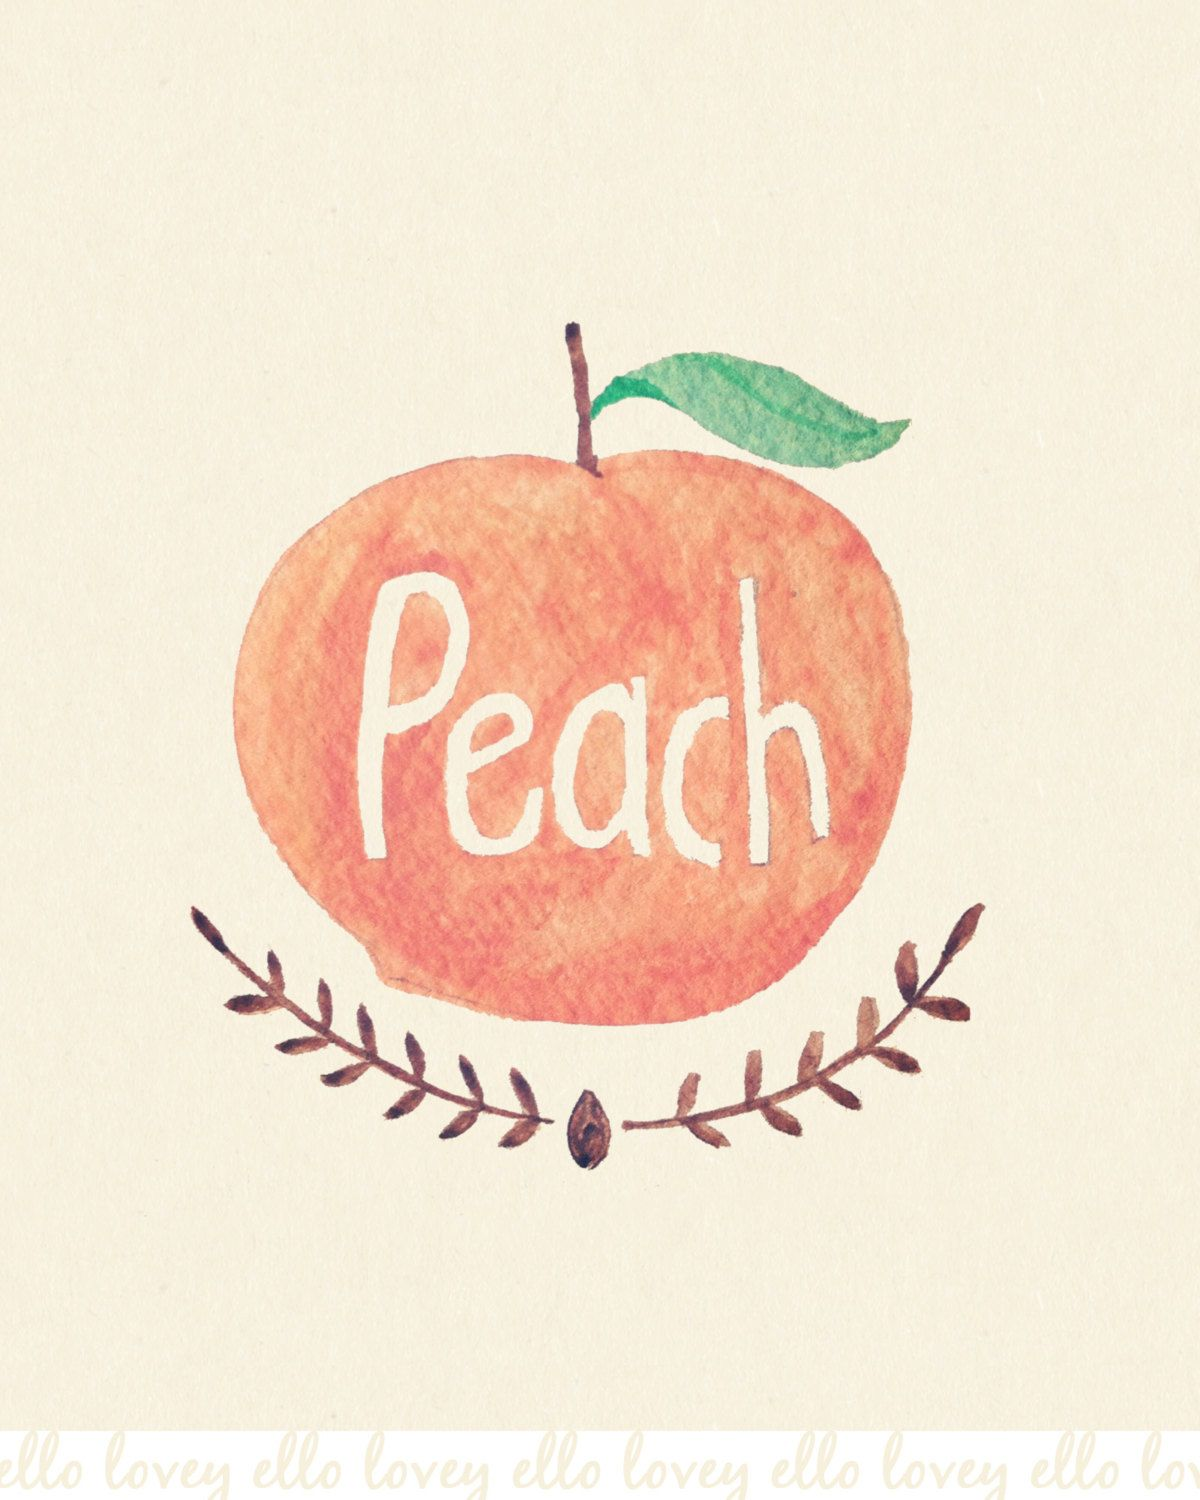 Peach Art Print 5x7 8x10 11x14 Peach Aesthetic Peach Art